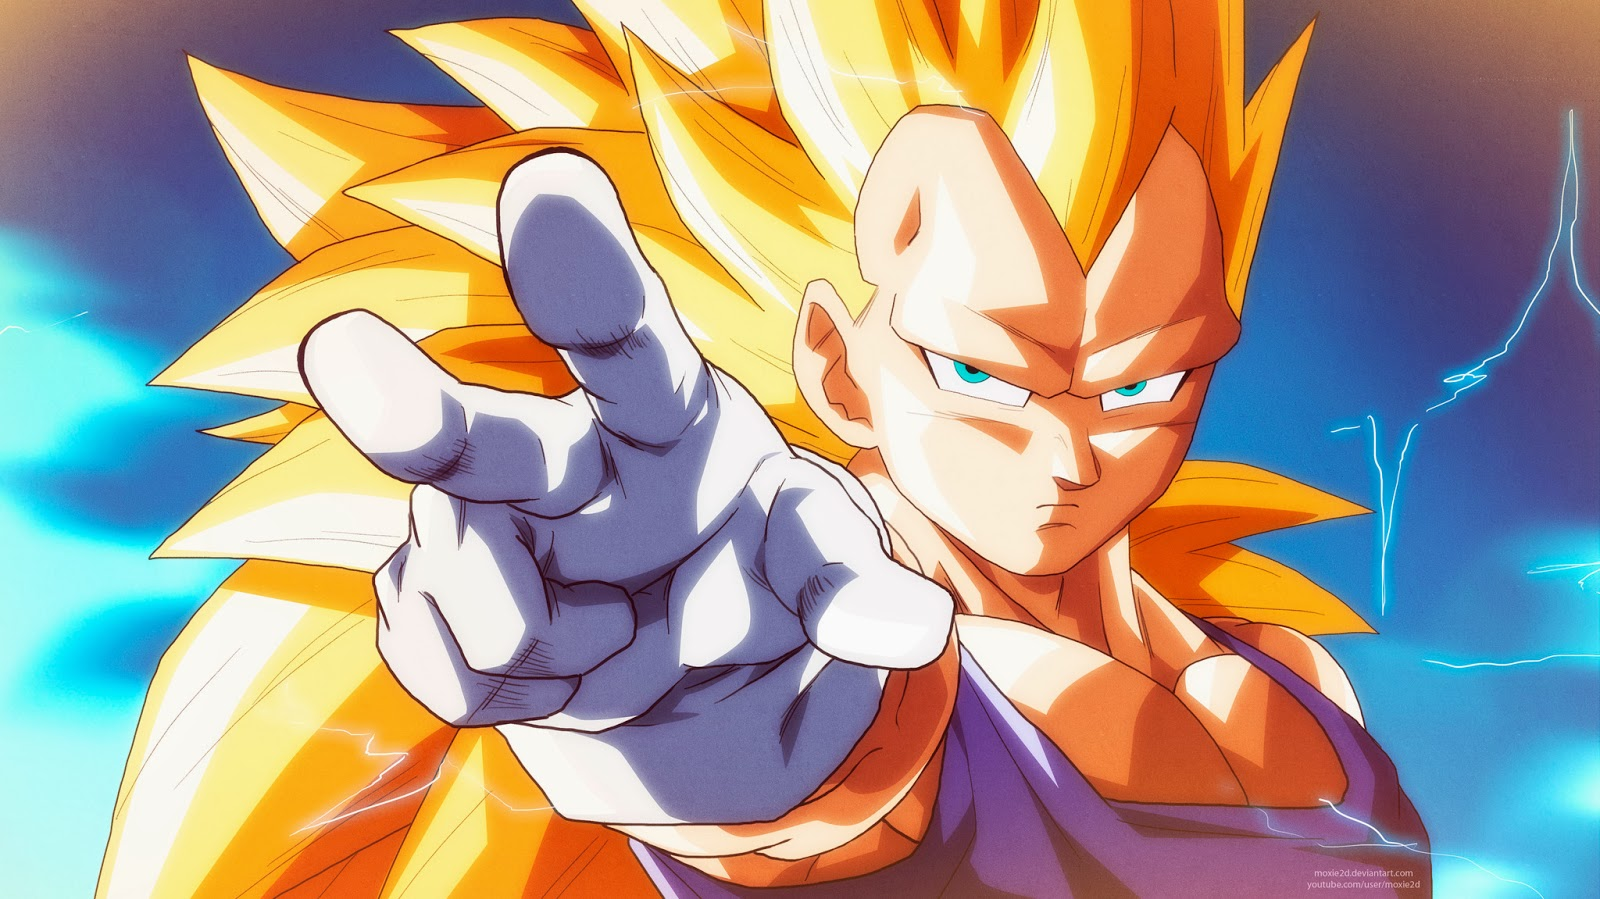 Super Saiyan God Hd Wallpaper Wallpapersafari